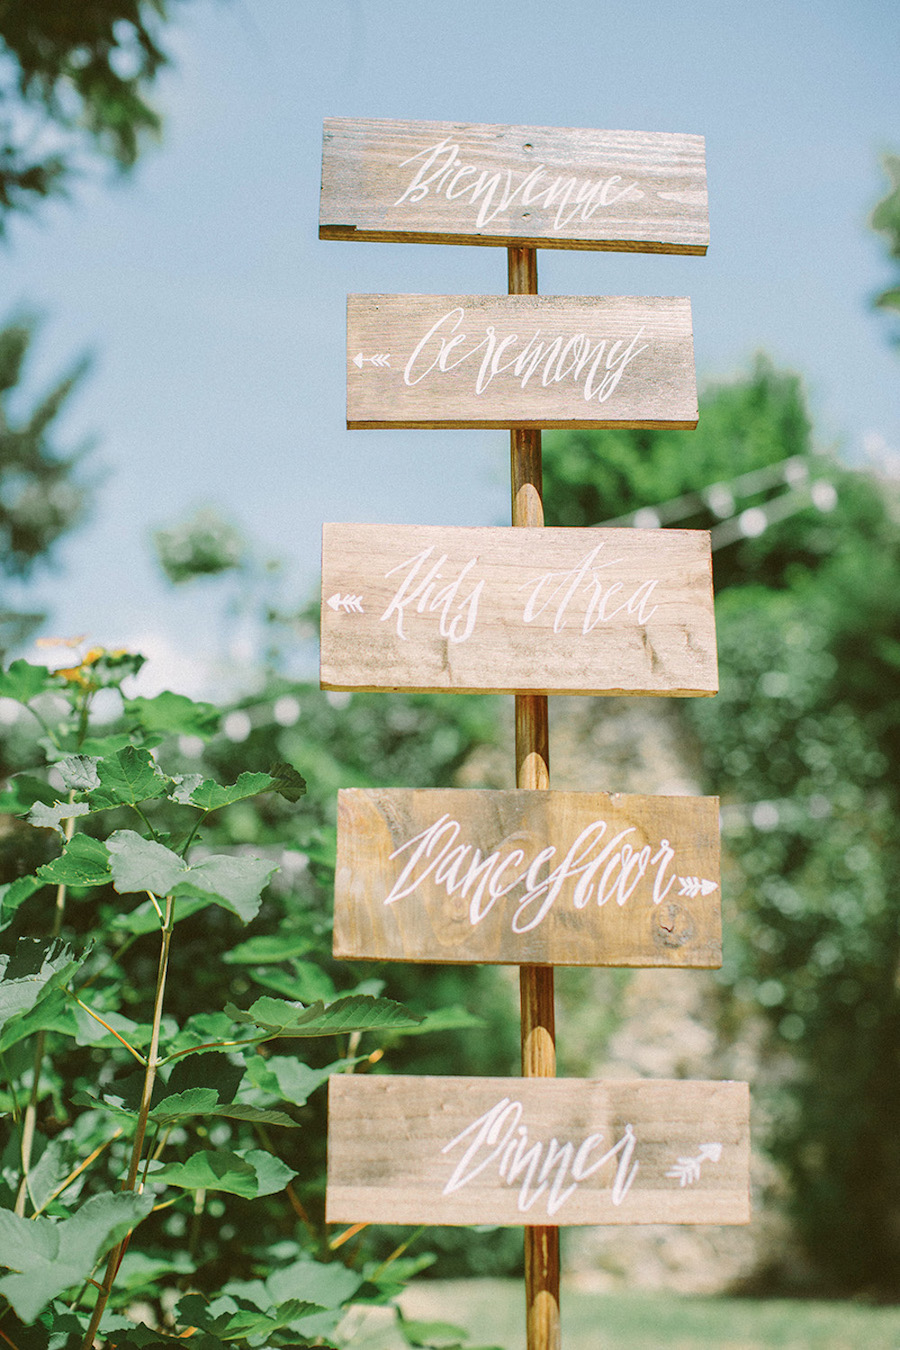 saya-photography-wedding-elegant-sign-romantic-provence-lourmarin-le-galinier-21.jpg